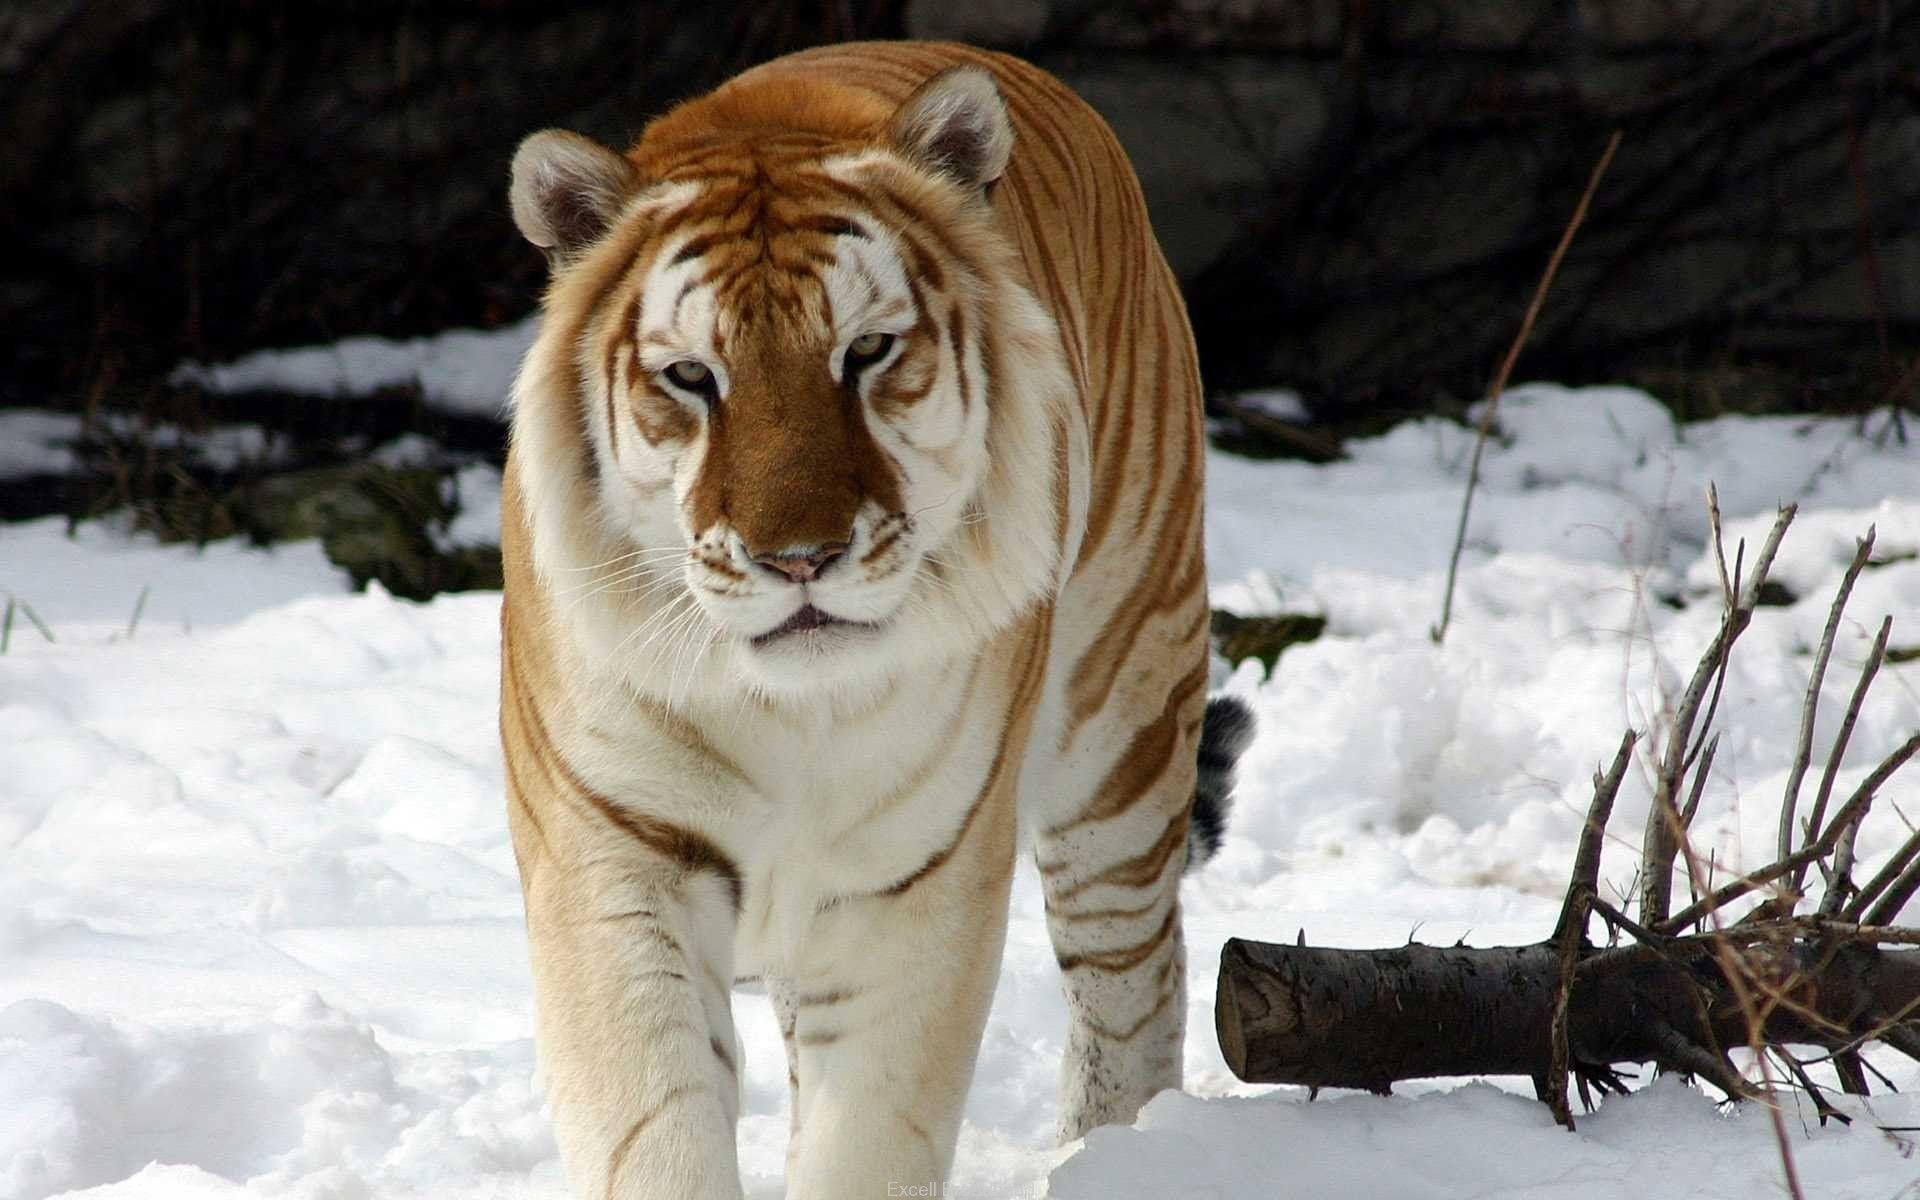 Strange Snow Tiger Wallpapers | HD Wallpapers